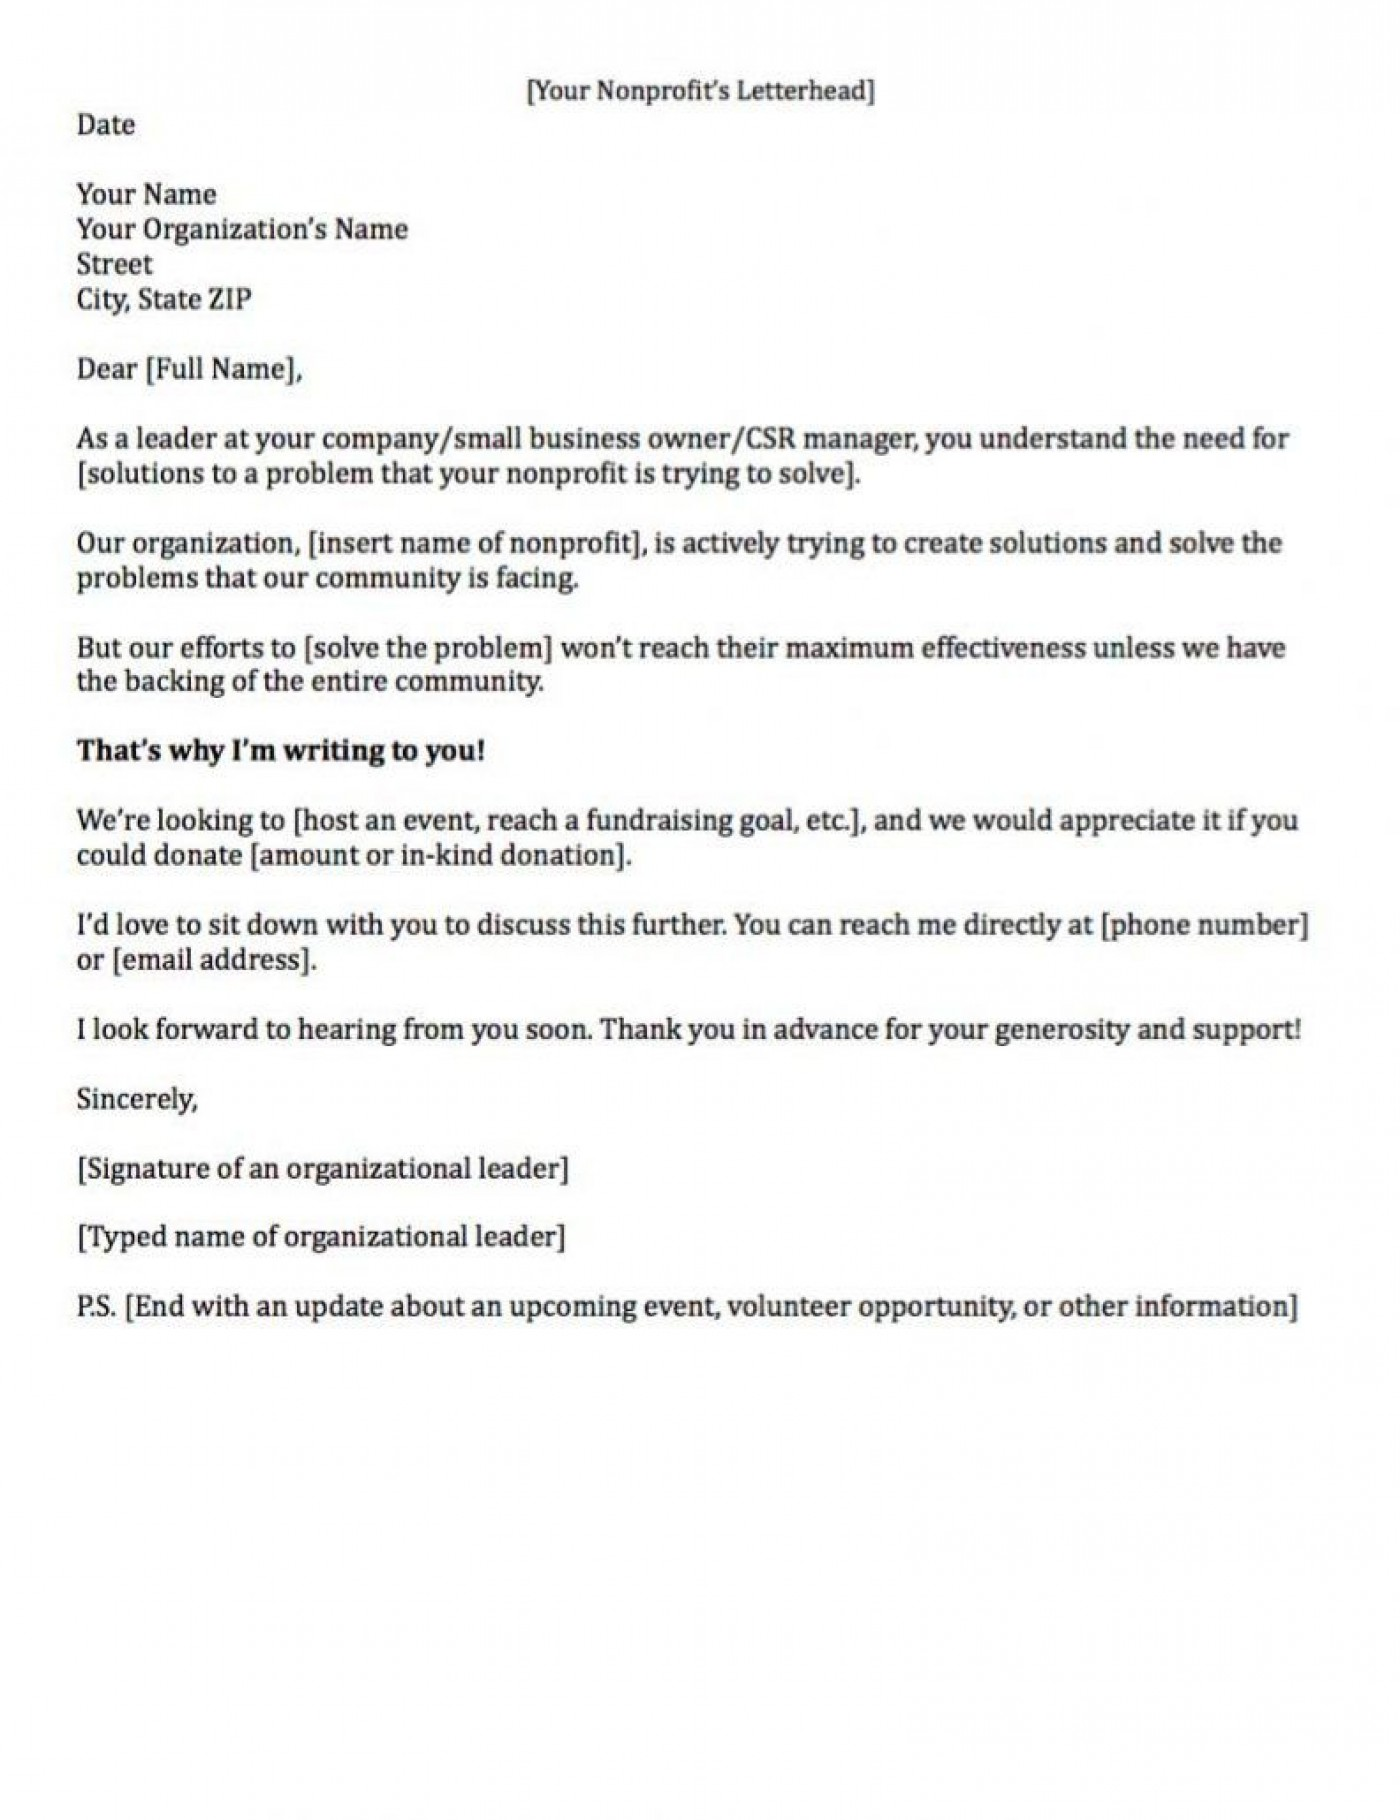 007 Remarkable Fund Raising Letter Template High Resolution  Fundraising For Mission Trip School Sample Of A Nonprofit Organization1400